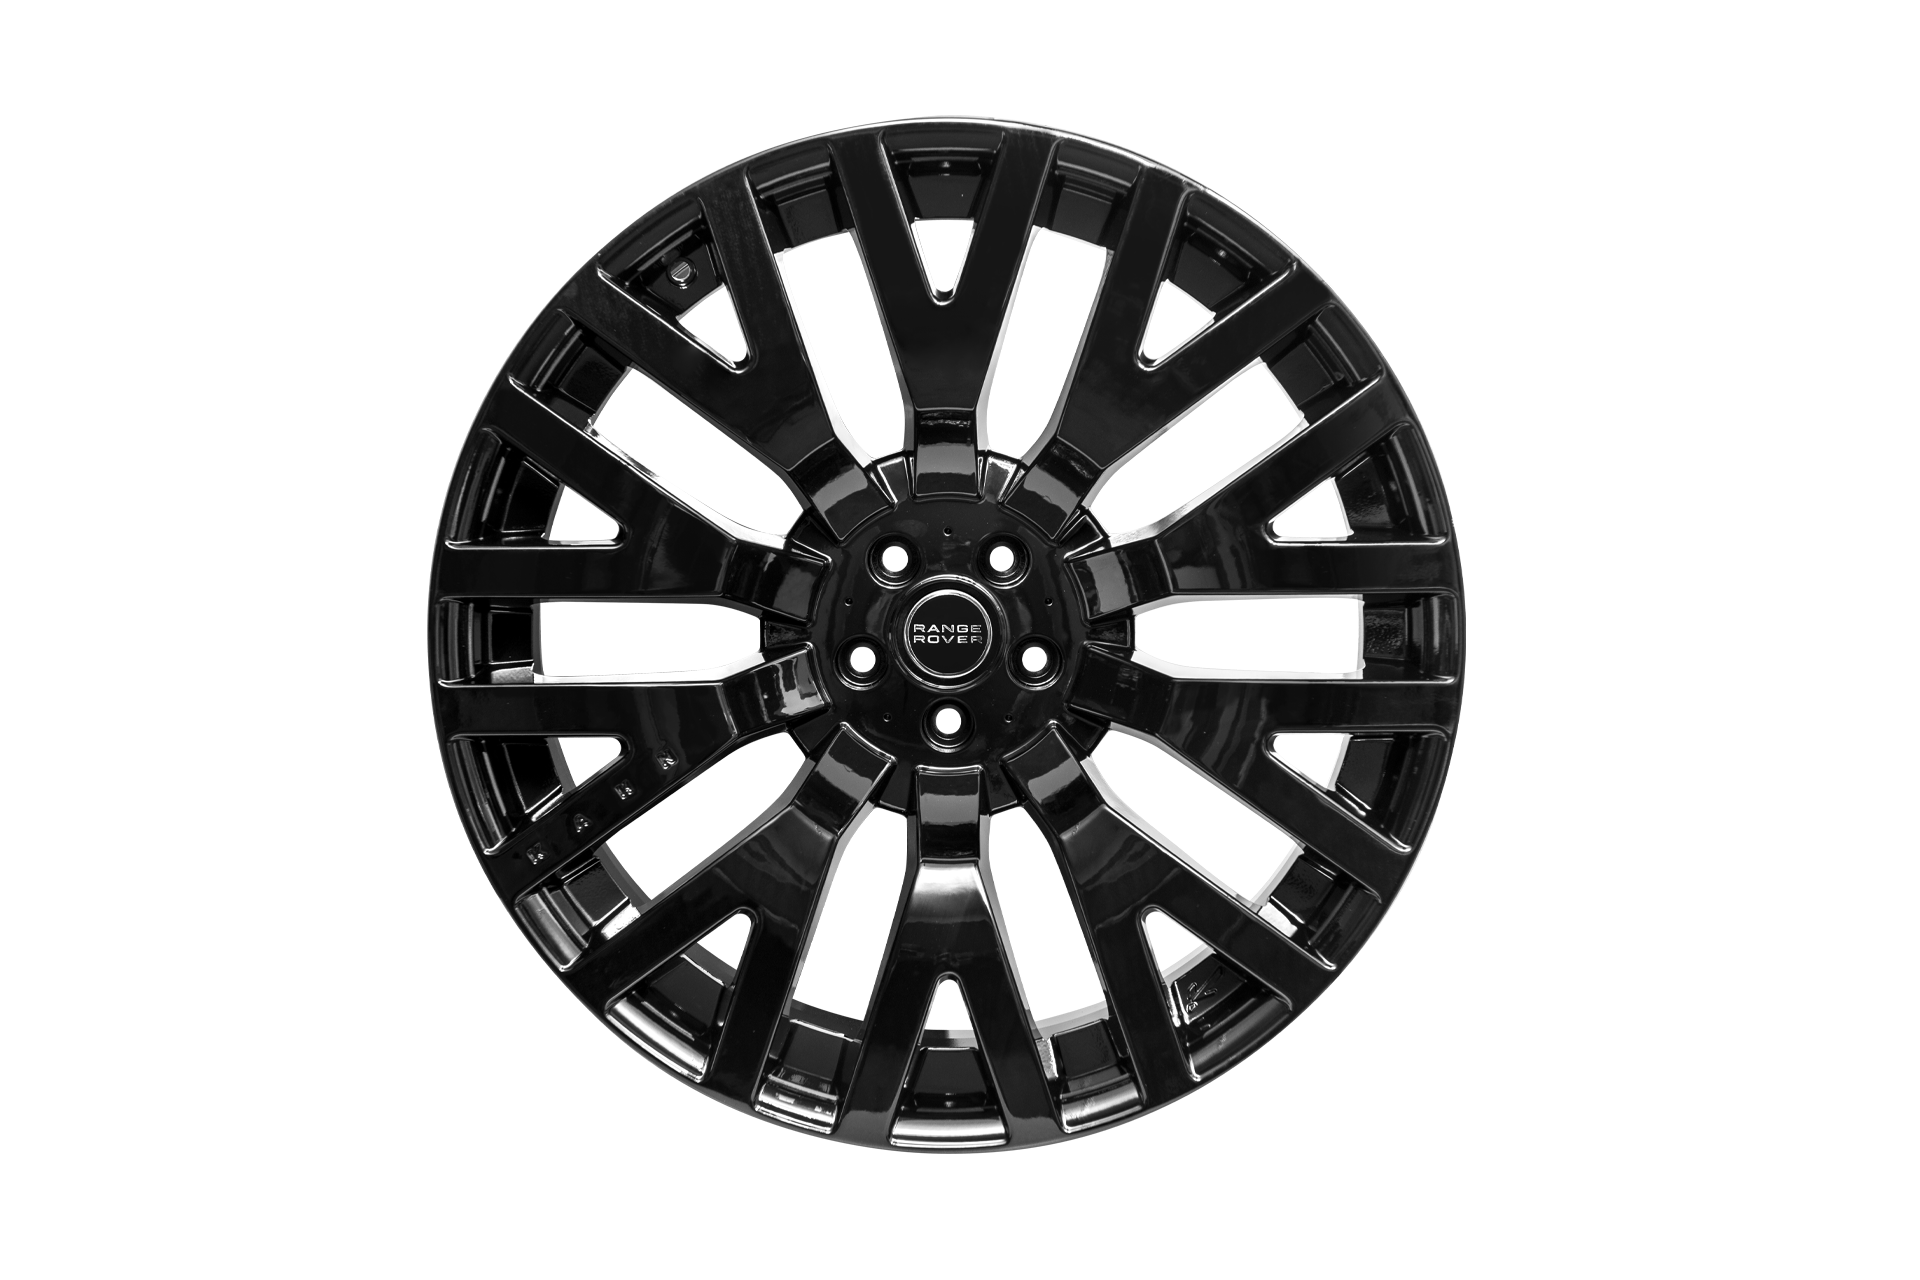 Range Rover Velar (2017-Present) Rs Light Alloy Wheels Image 4768